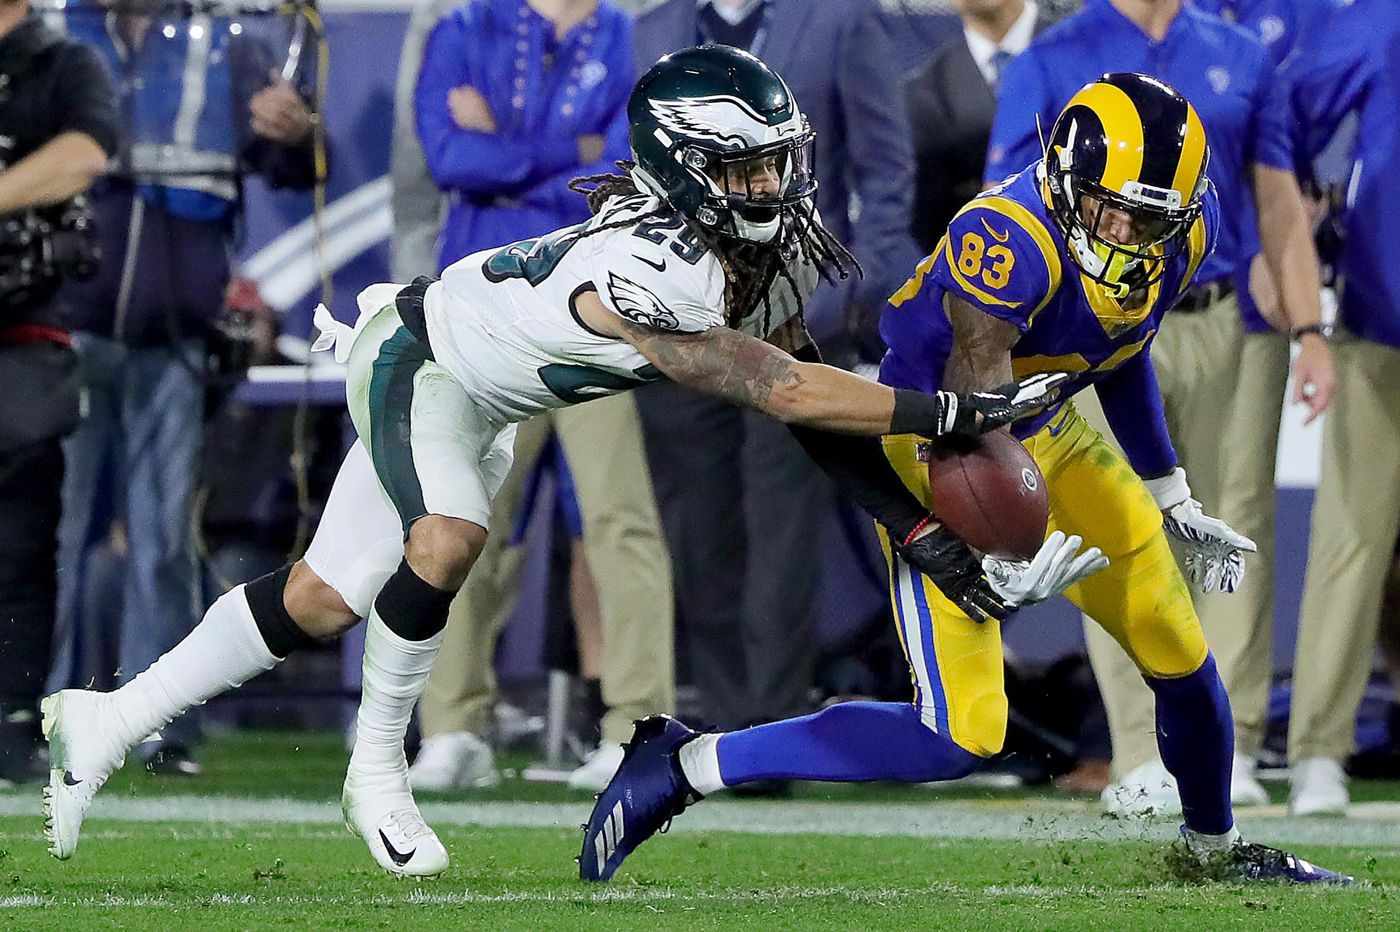 Eagles-Texans scouting report and prediction | Paul Domowitch